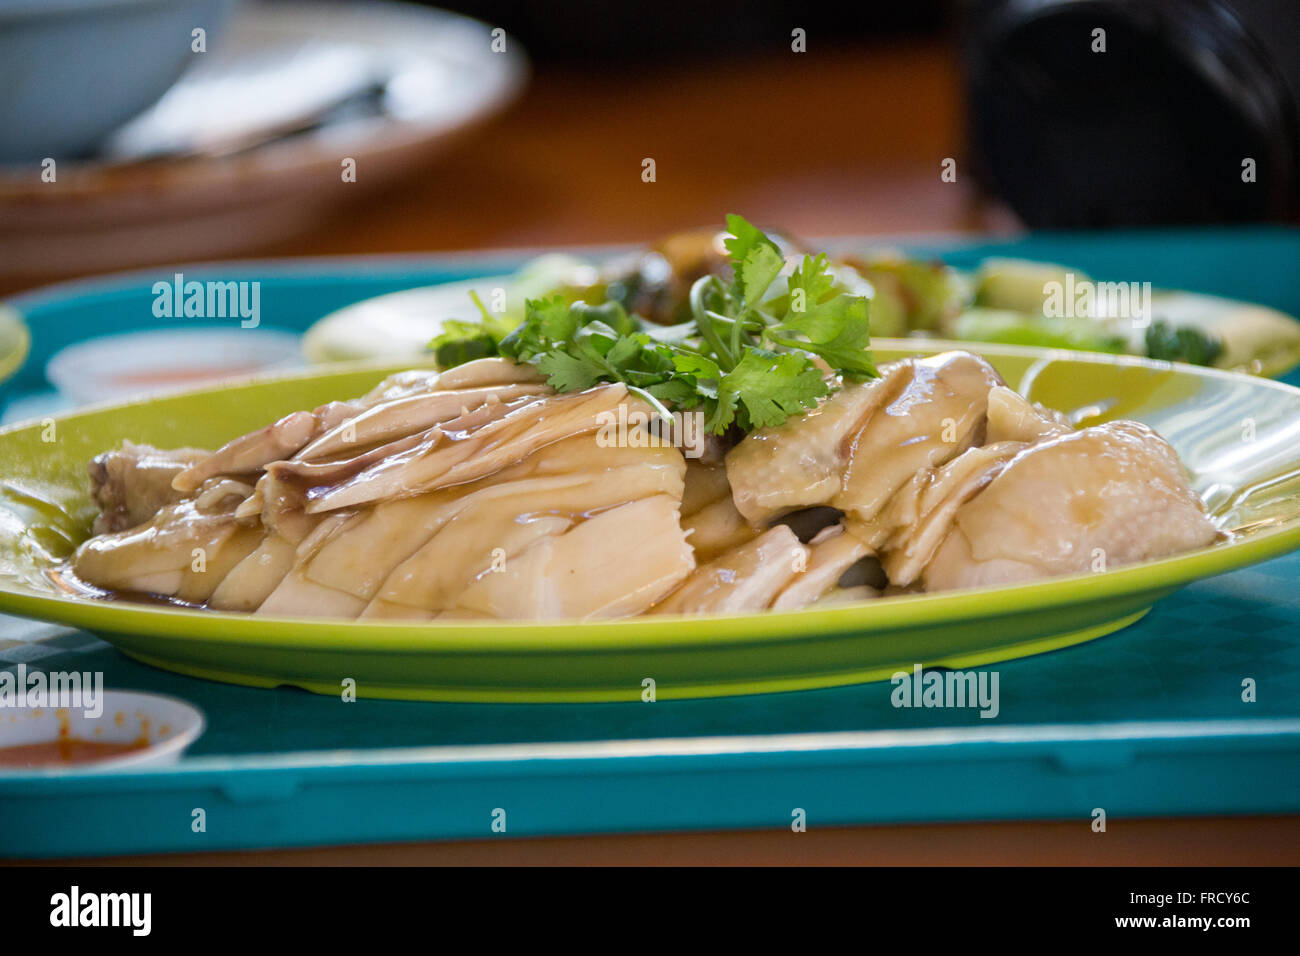 Hainanese Chicken rice at Tian Tian food stall in Maxwell Road Food Centre, Singapore Stock Photo